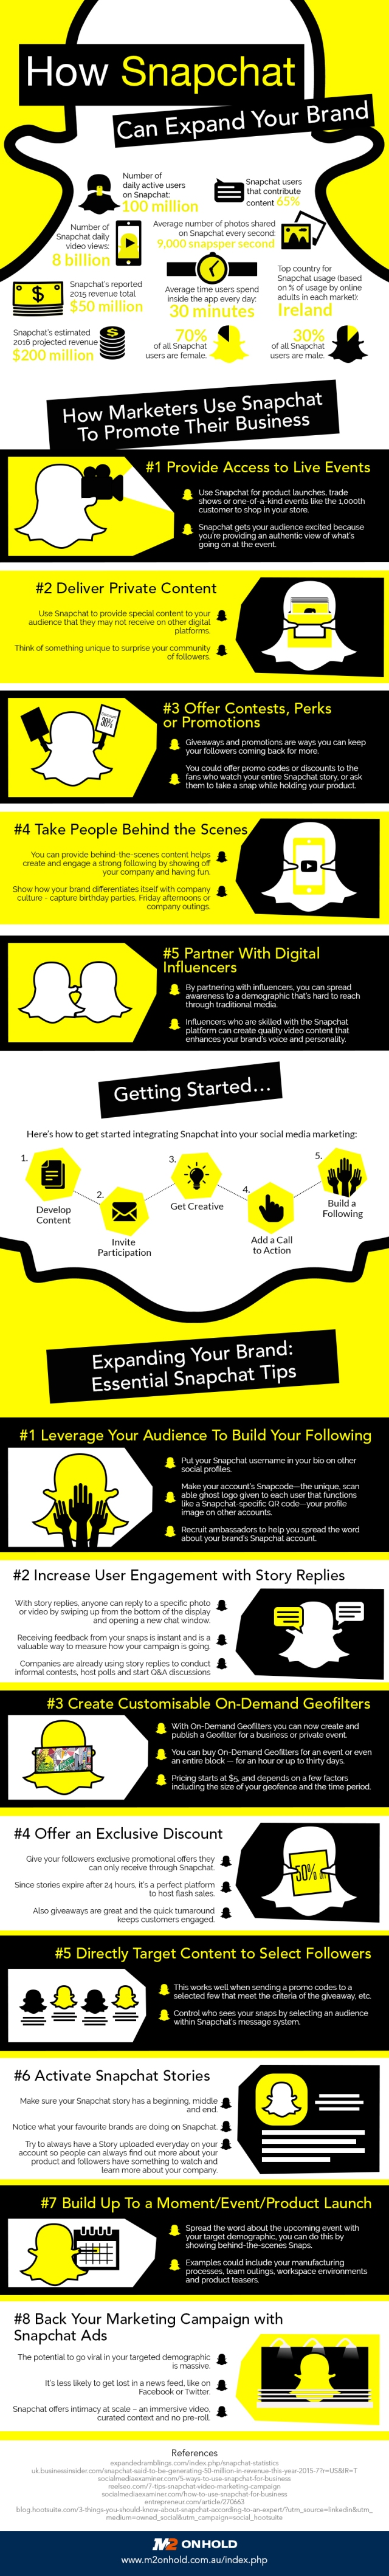 Snapchat Marketing for Beginners 13 Tips to Promote Your Business